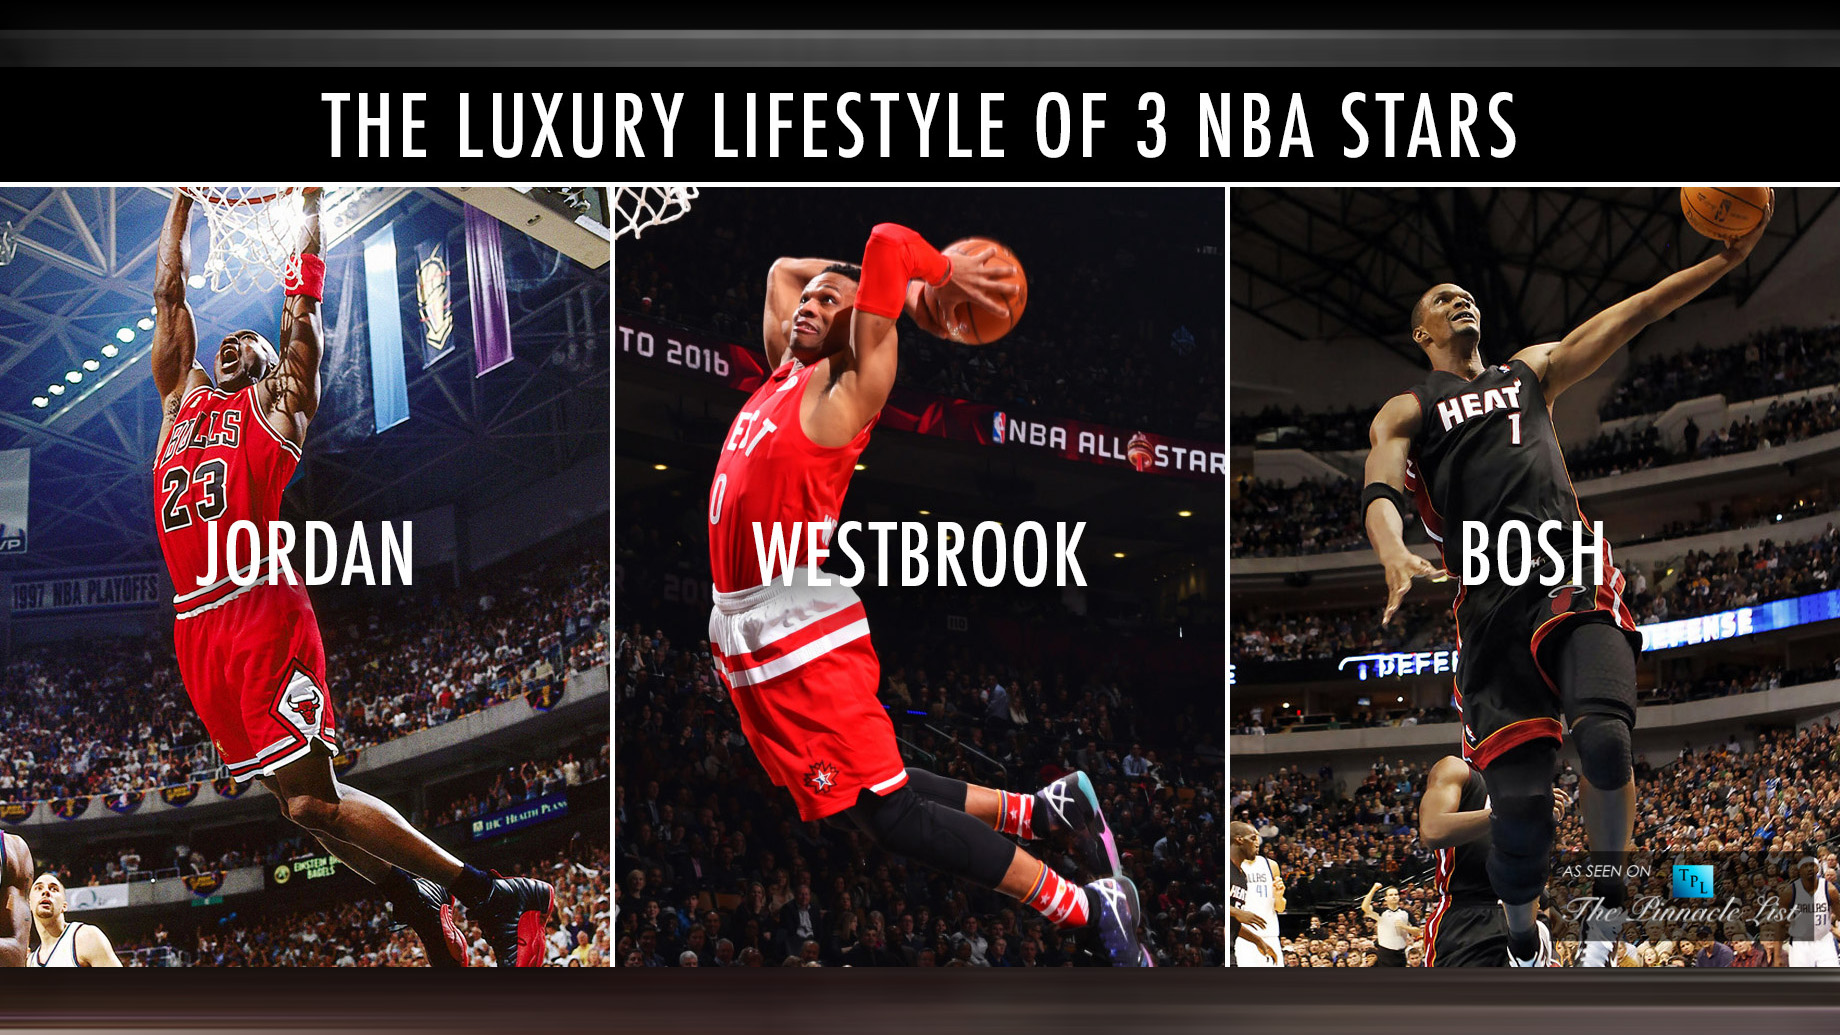 The Luxury Lifestyles of 3 NBA Stars - Jordan - Westbrook - Bosh